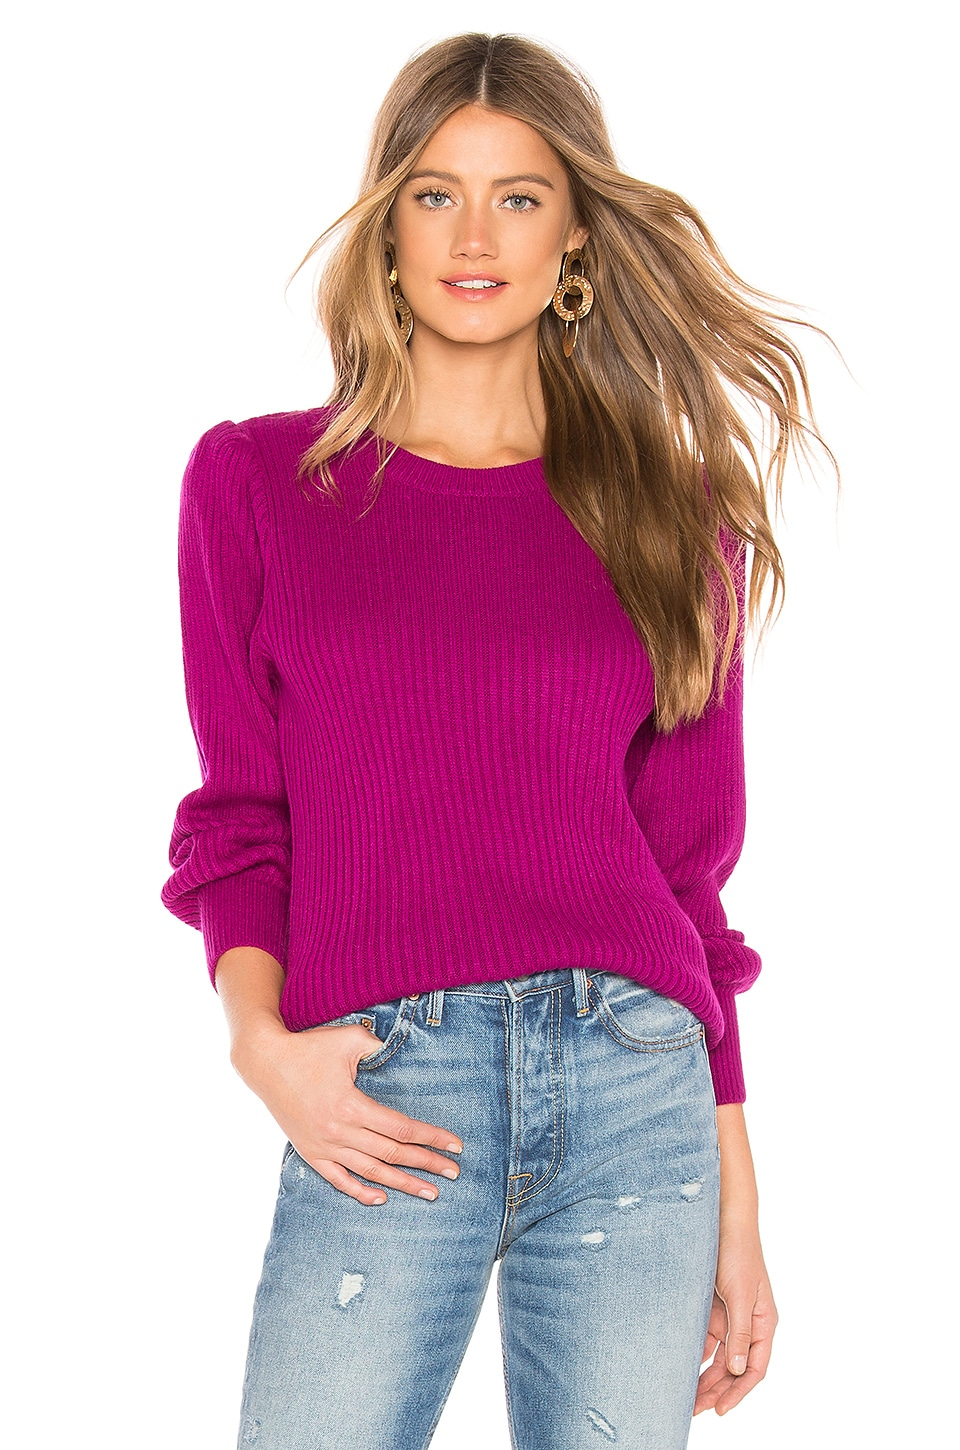 Parker PARKER MARCELINE SWEATER IN PINK.